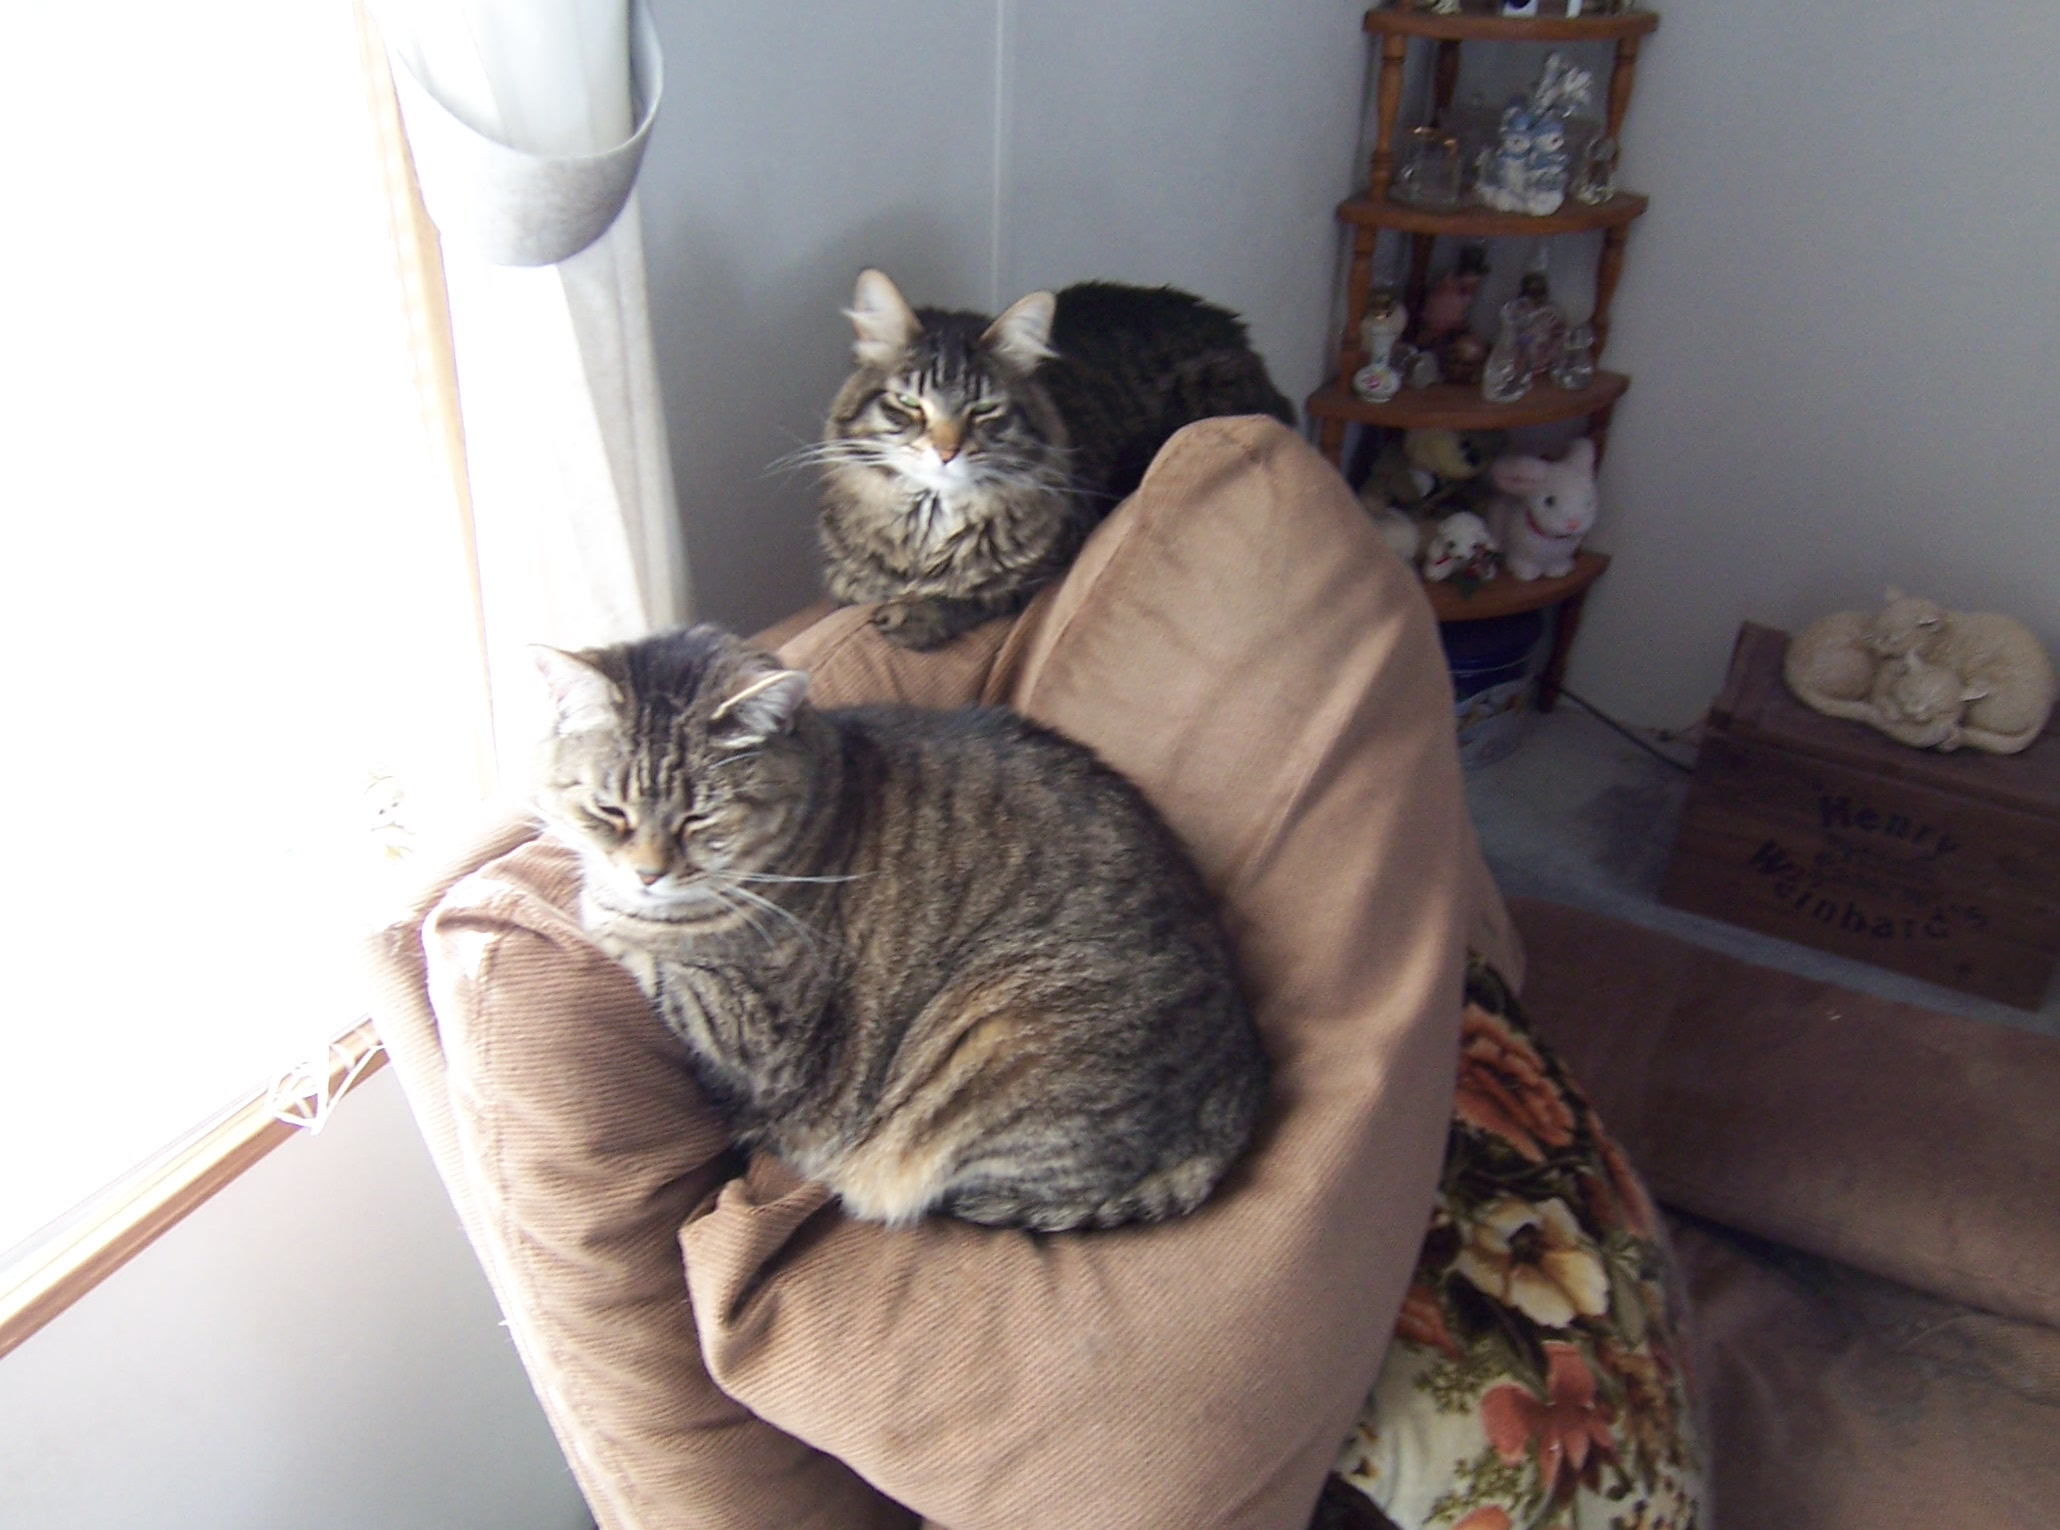 Let's see a picture of the cat that guards your house-lizzie-maggie.jpg